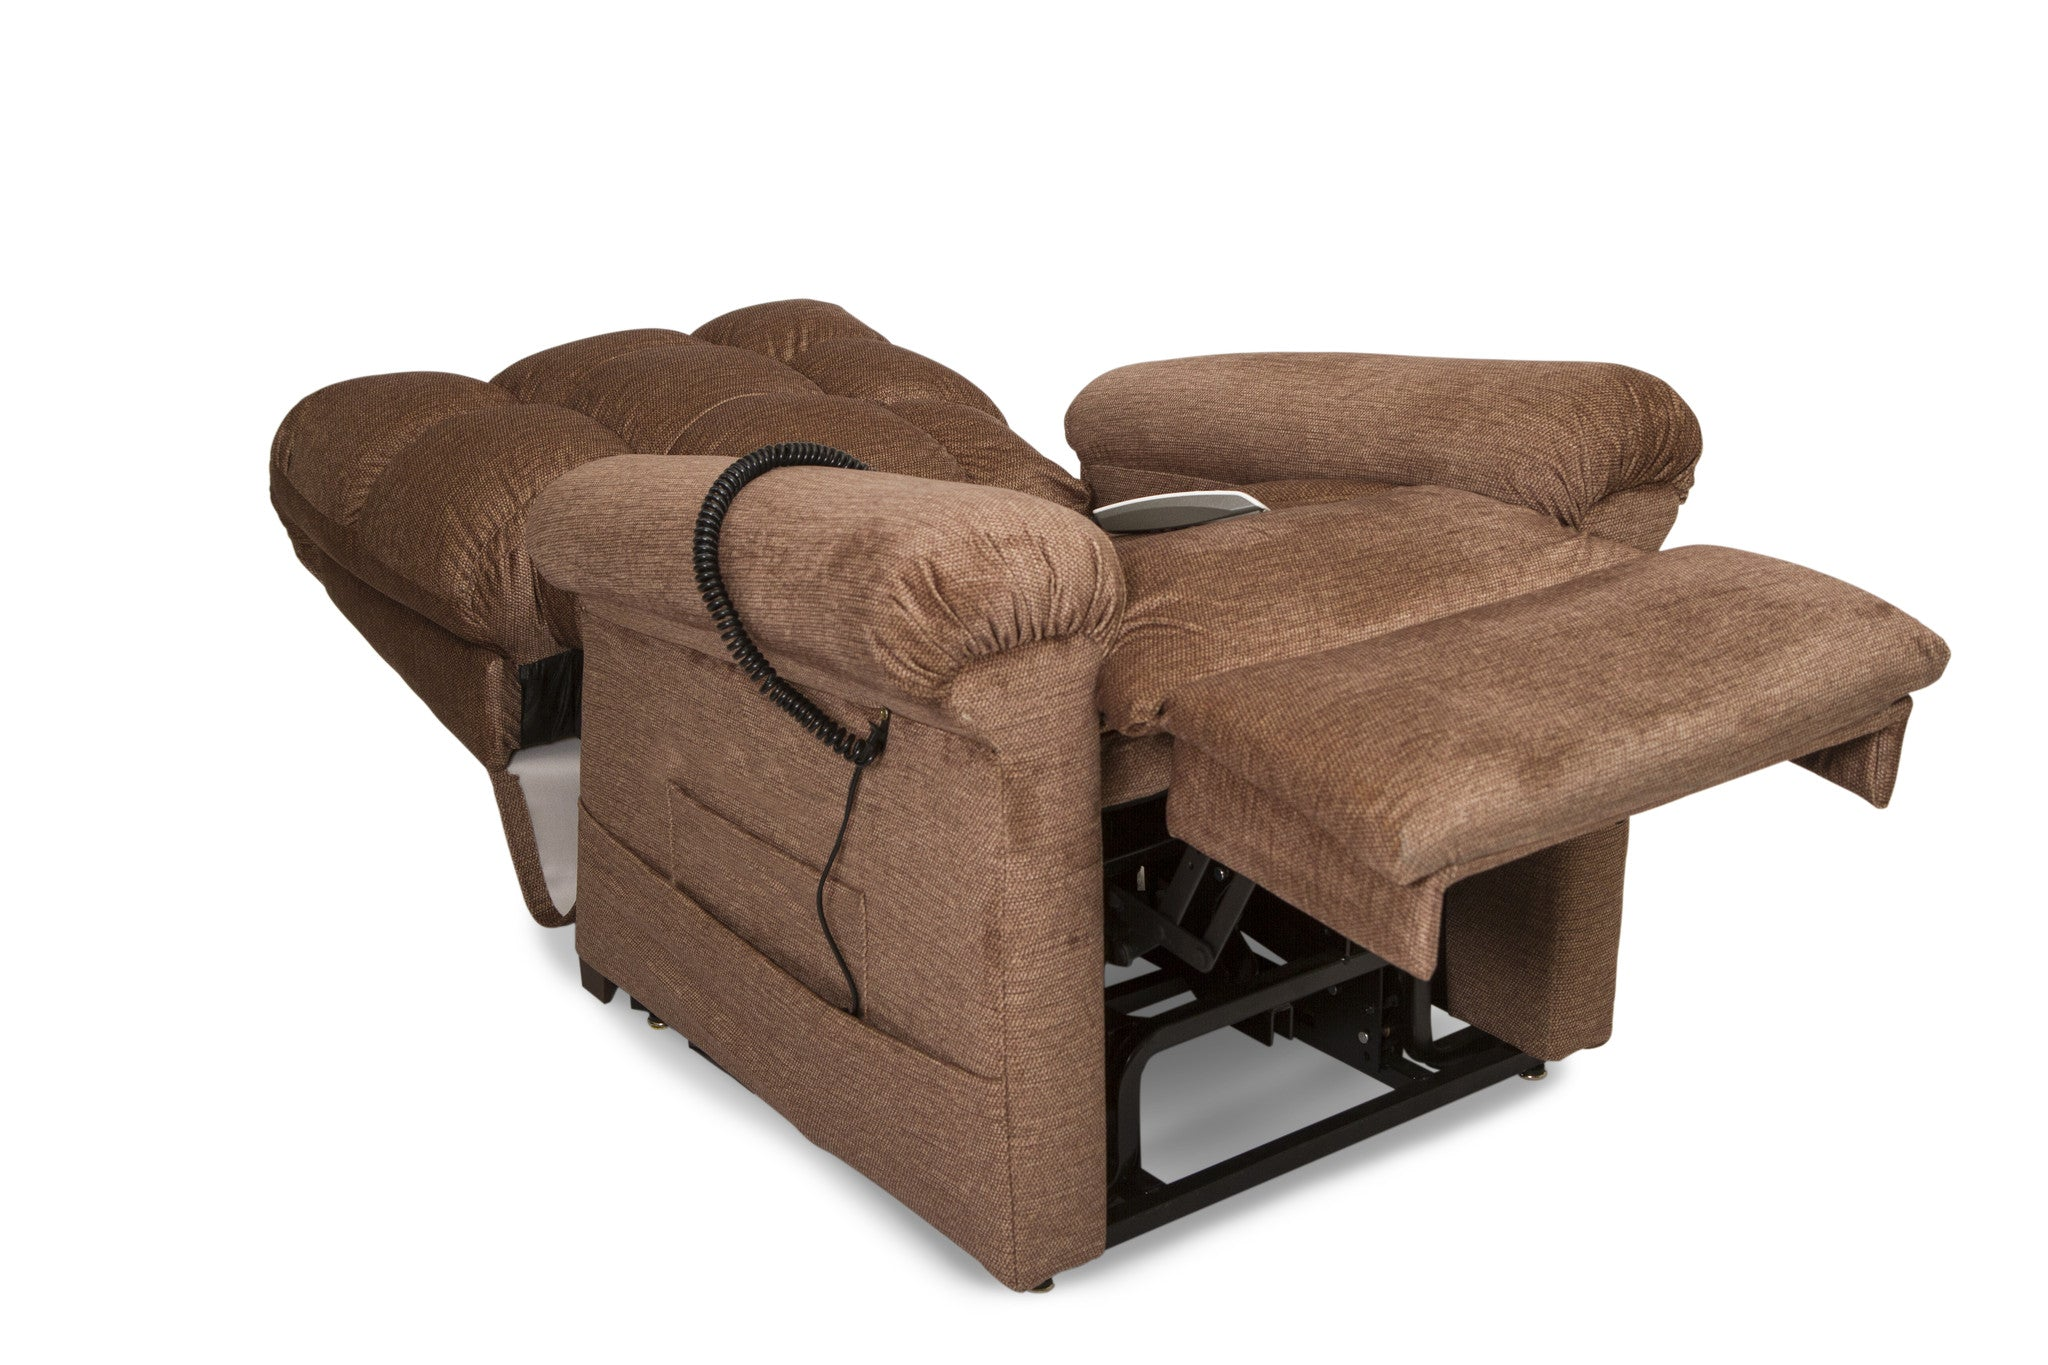 ... Pride Lift Chair Recliner LC580 Oasis Infinity - Multiple Fabrics  sc 1 st  Safe Home Pro & Pride Lift Chair Recliner LC580 Oasis Infinity - Multiple Fabrics ...